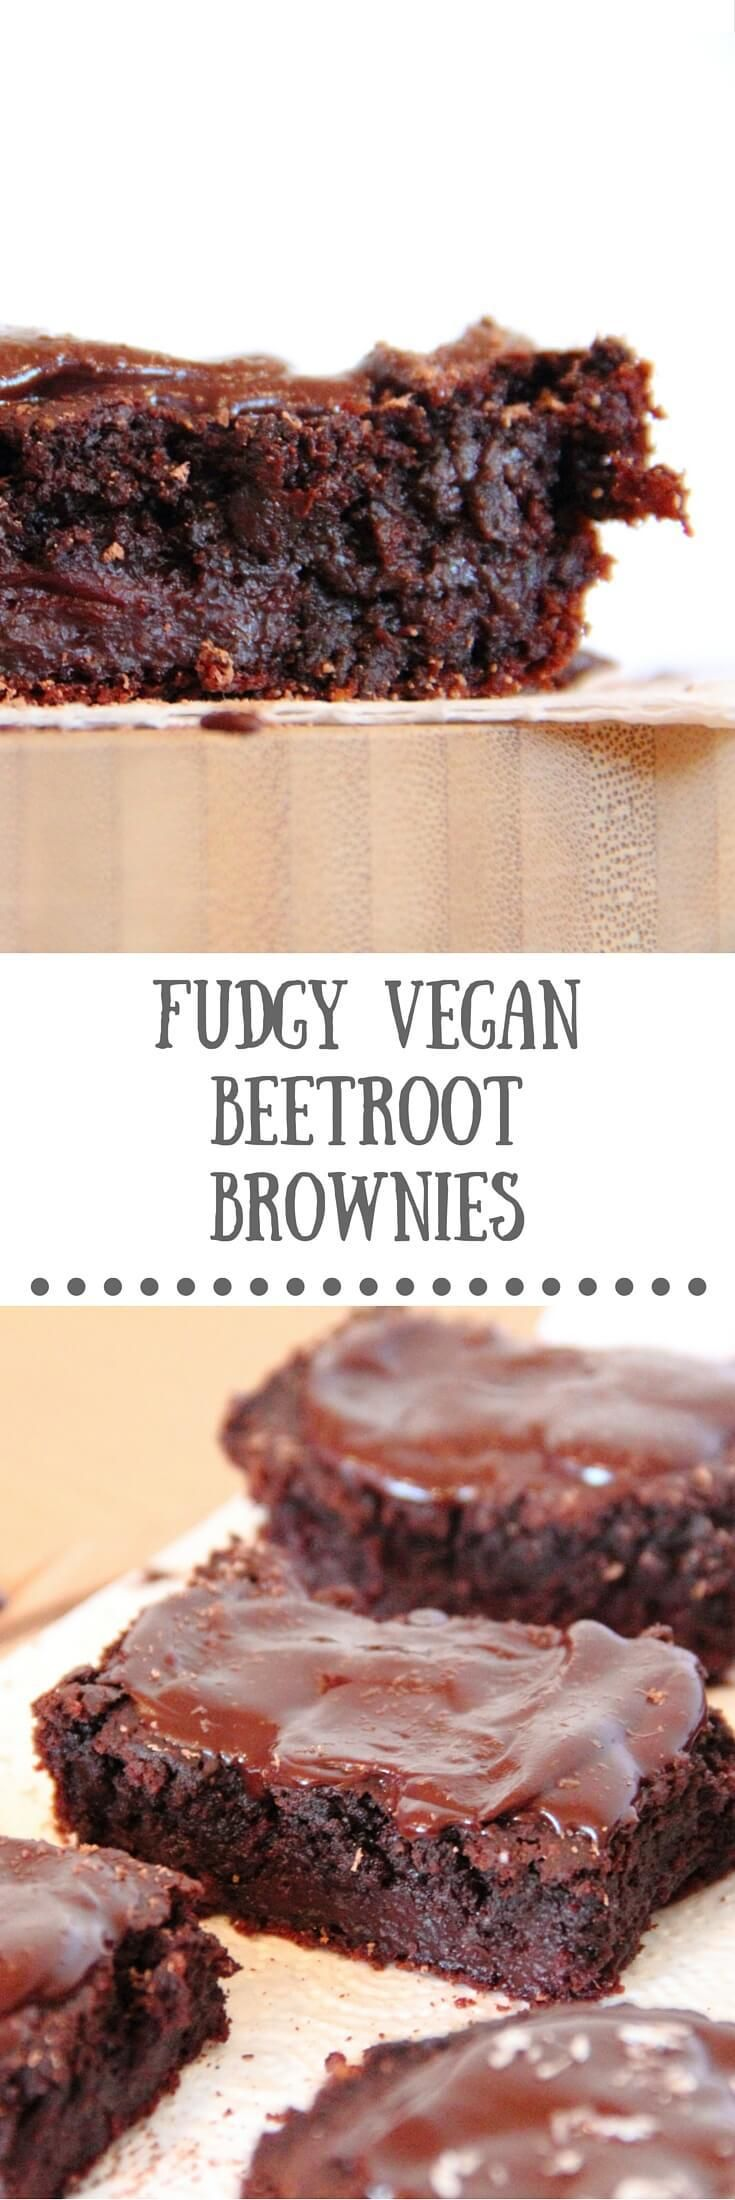 The only vegan beetroot brownie recipe youll ever need! Dairy-free, egg-free.